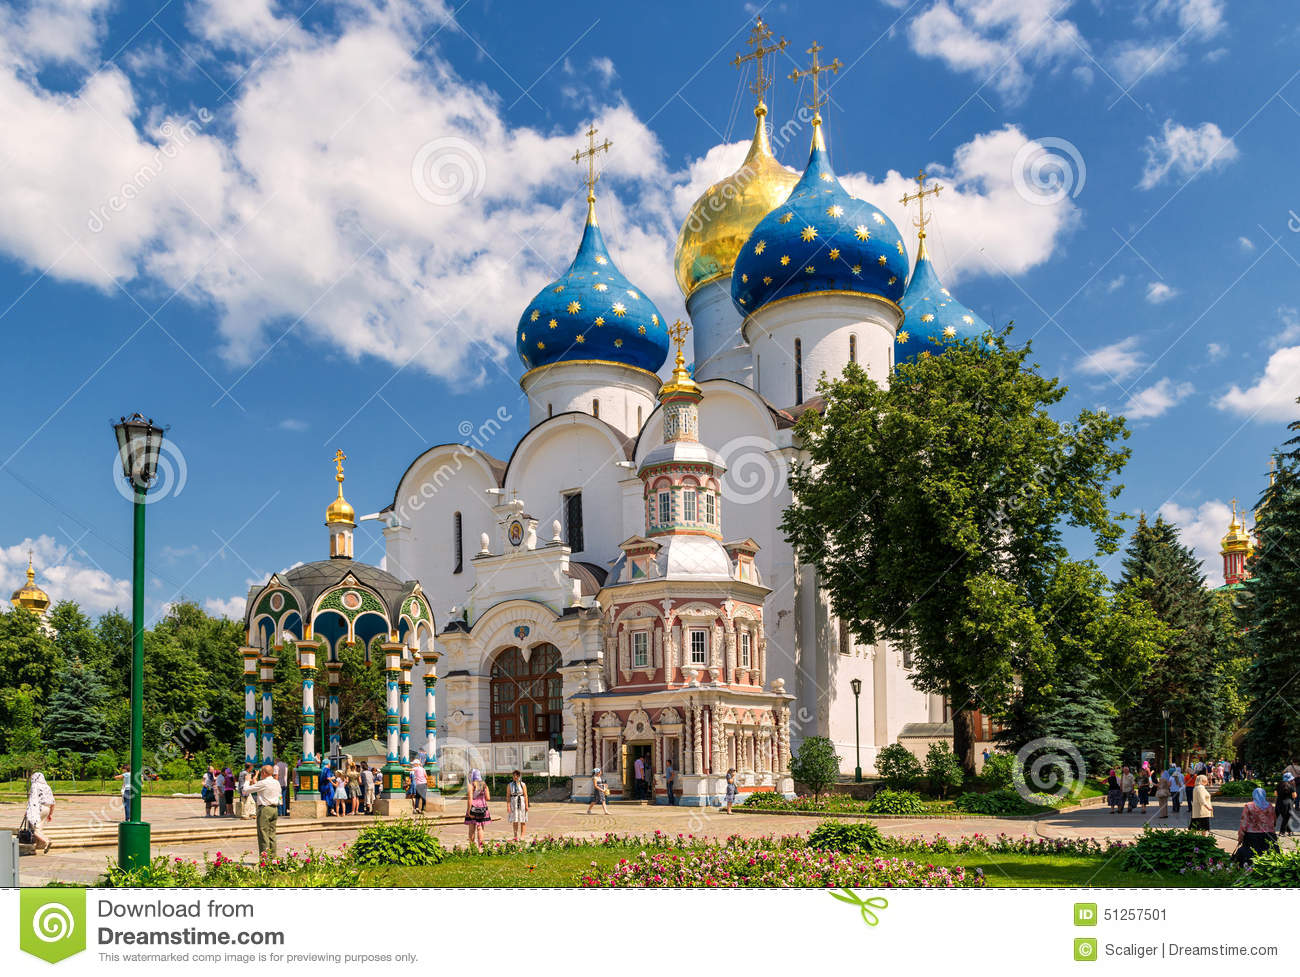 Assumption Cathedral in Sergiyev Posad near Moscow